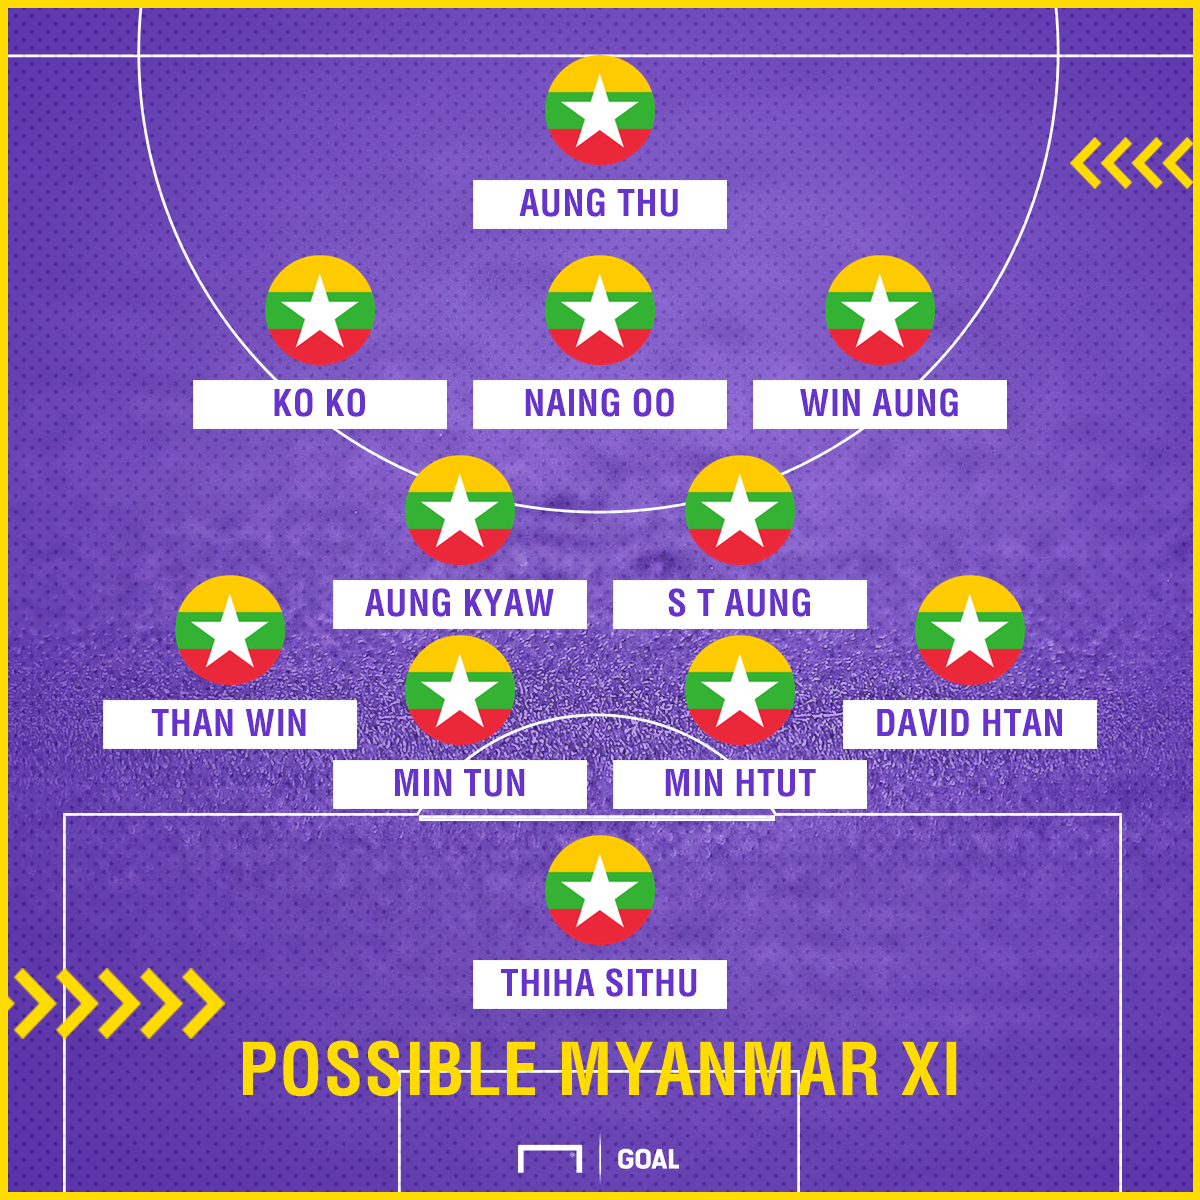 Possible Myanmar XI